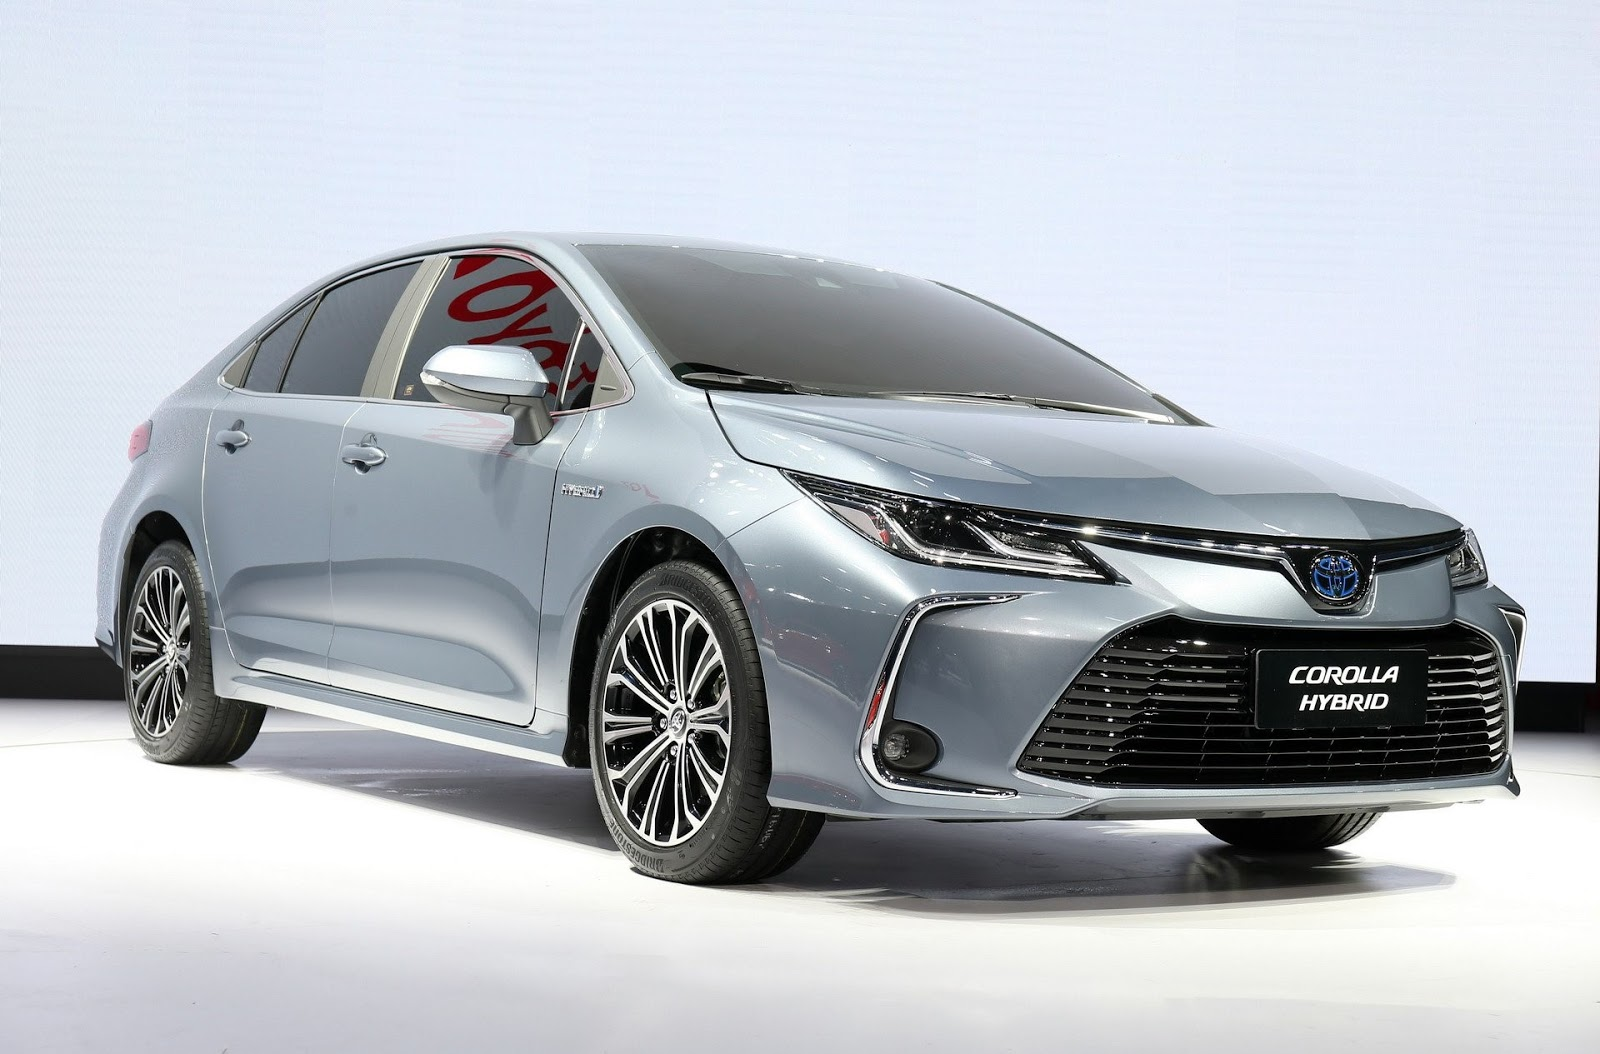 Fresh From The All New Corolla Sedan S World Debut At Guangzhou Auto Show Toyota Has Now Released Information On European Spec Model